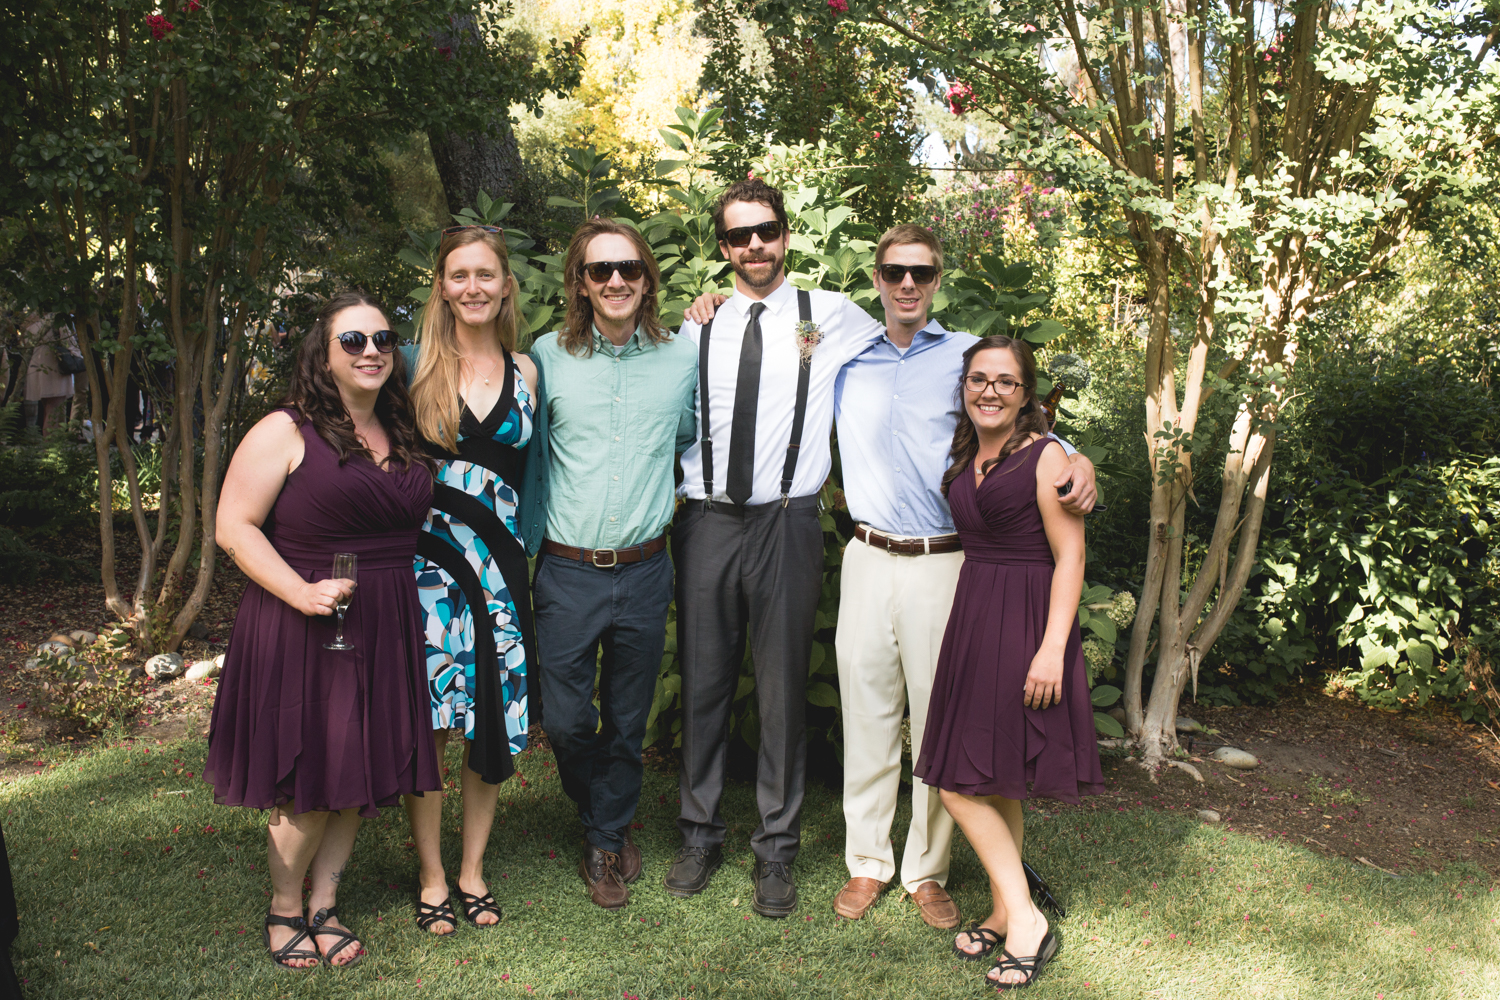 groupshot_weddingguests_theriverhouse_santacruzwedding.jpg